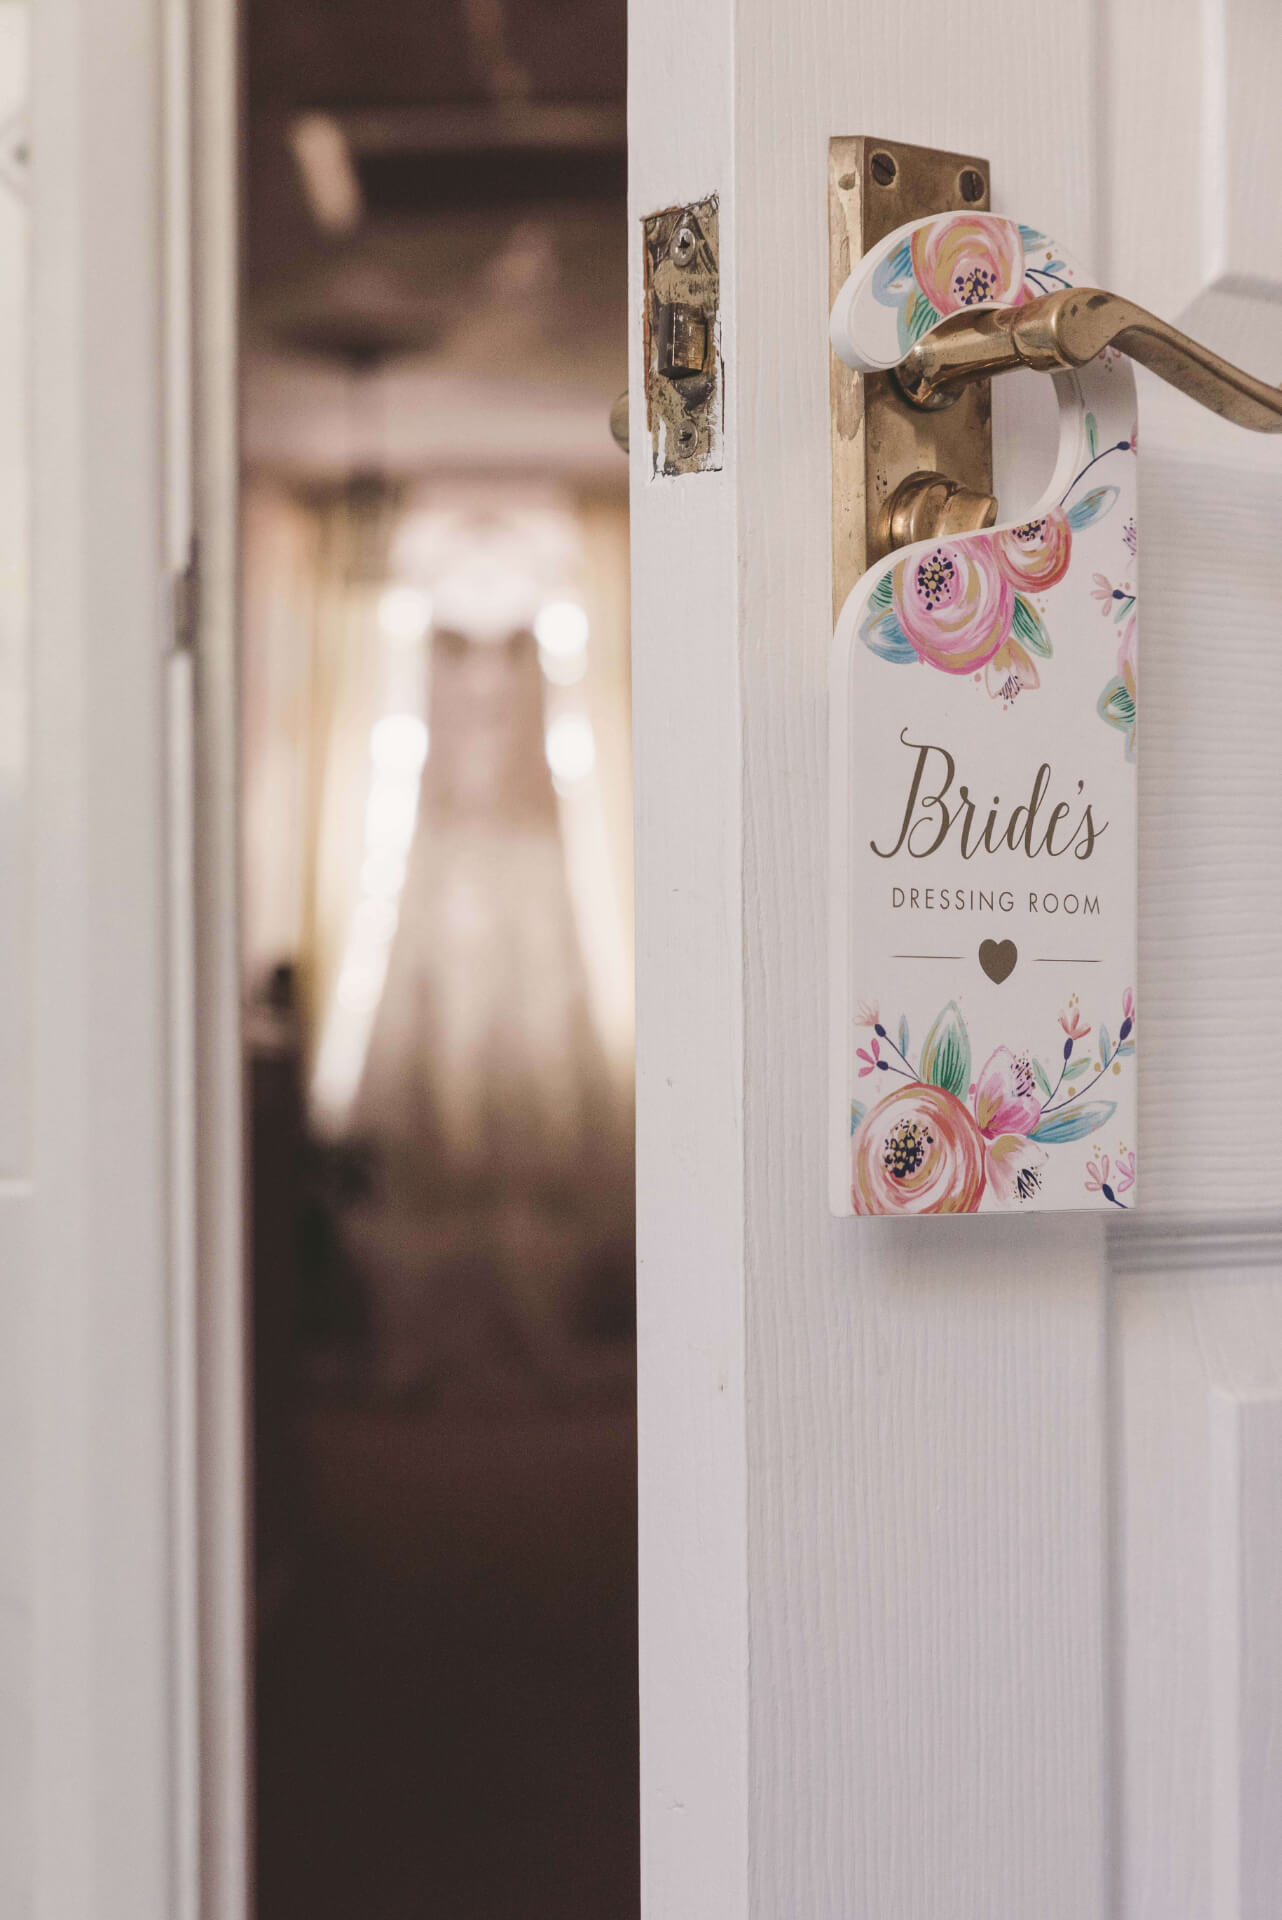 Bride door sign, Reportage, wedding photos, Brides dressing room - Lincolnshire wedding photographer, Slice of Life Photography